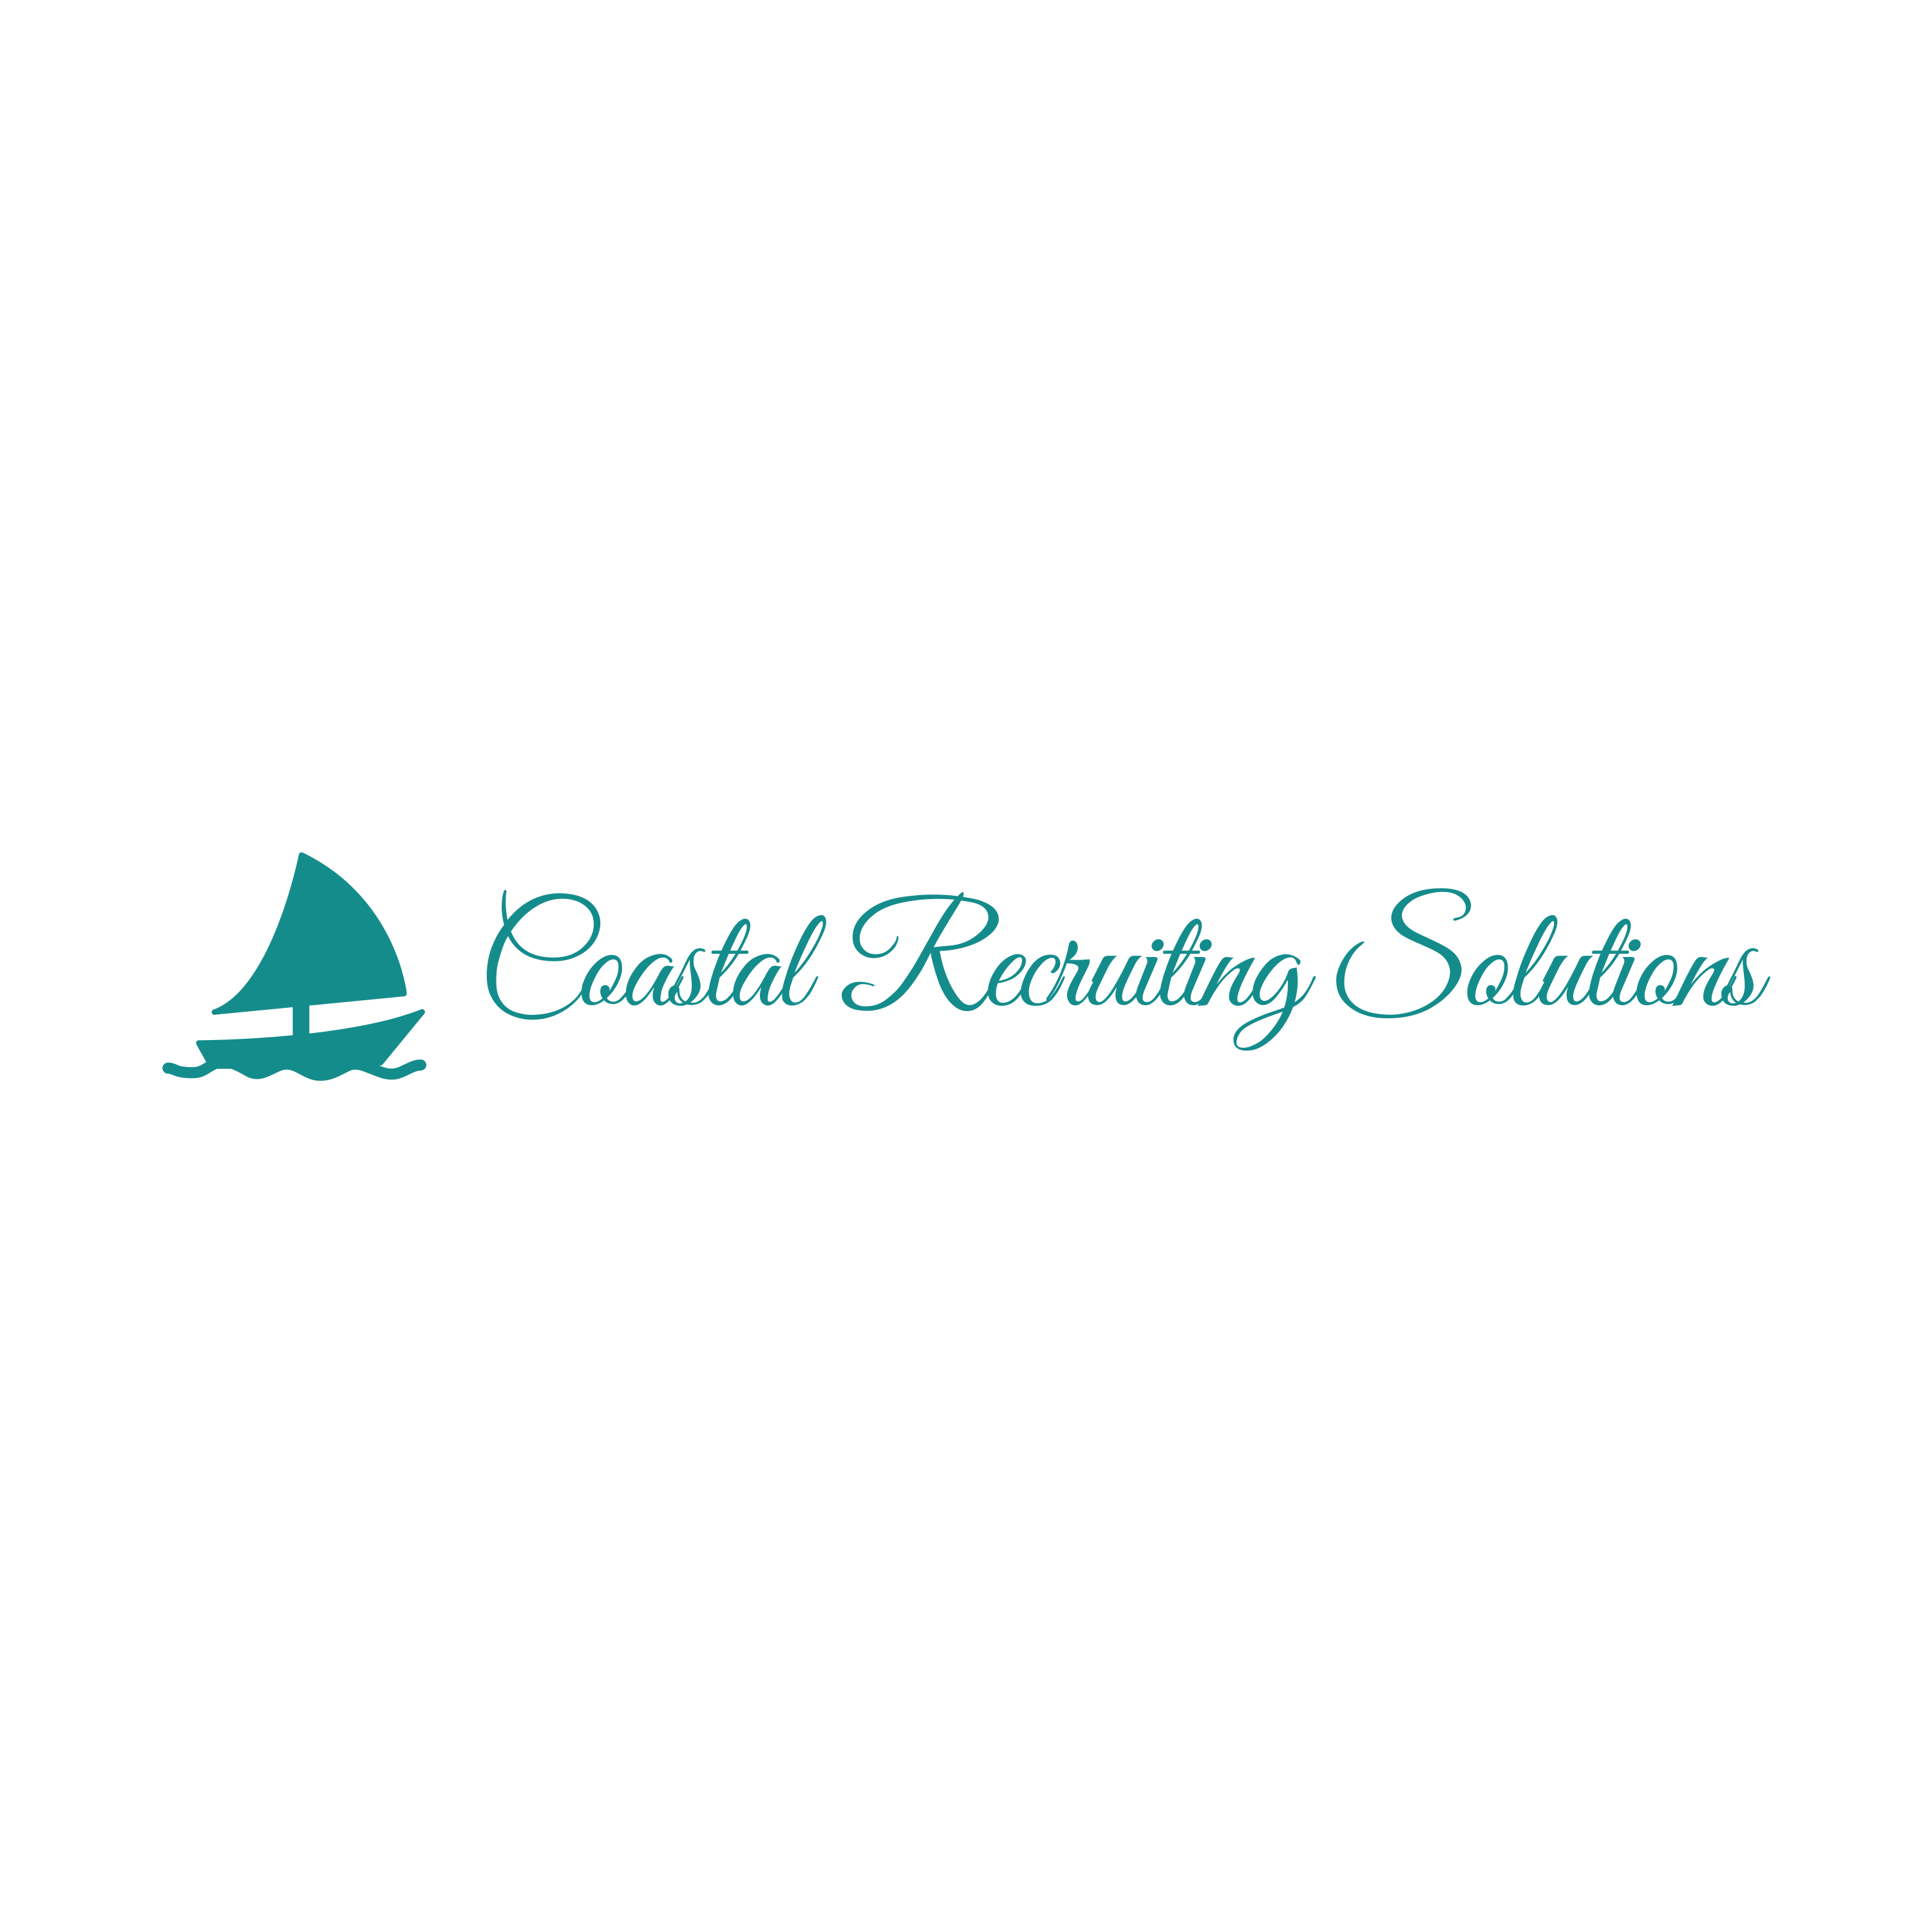 Coastal Recruiting Solutions